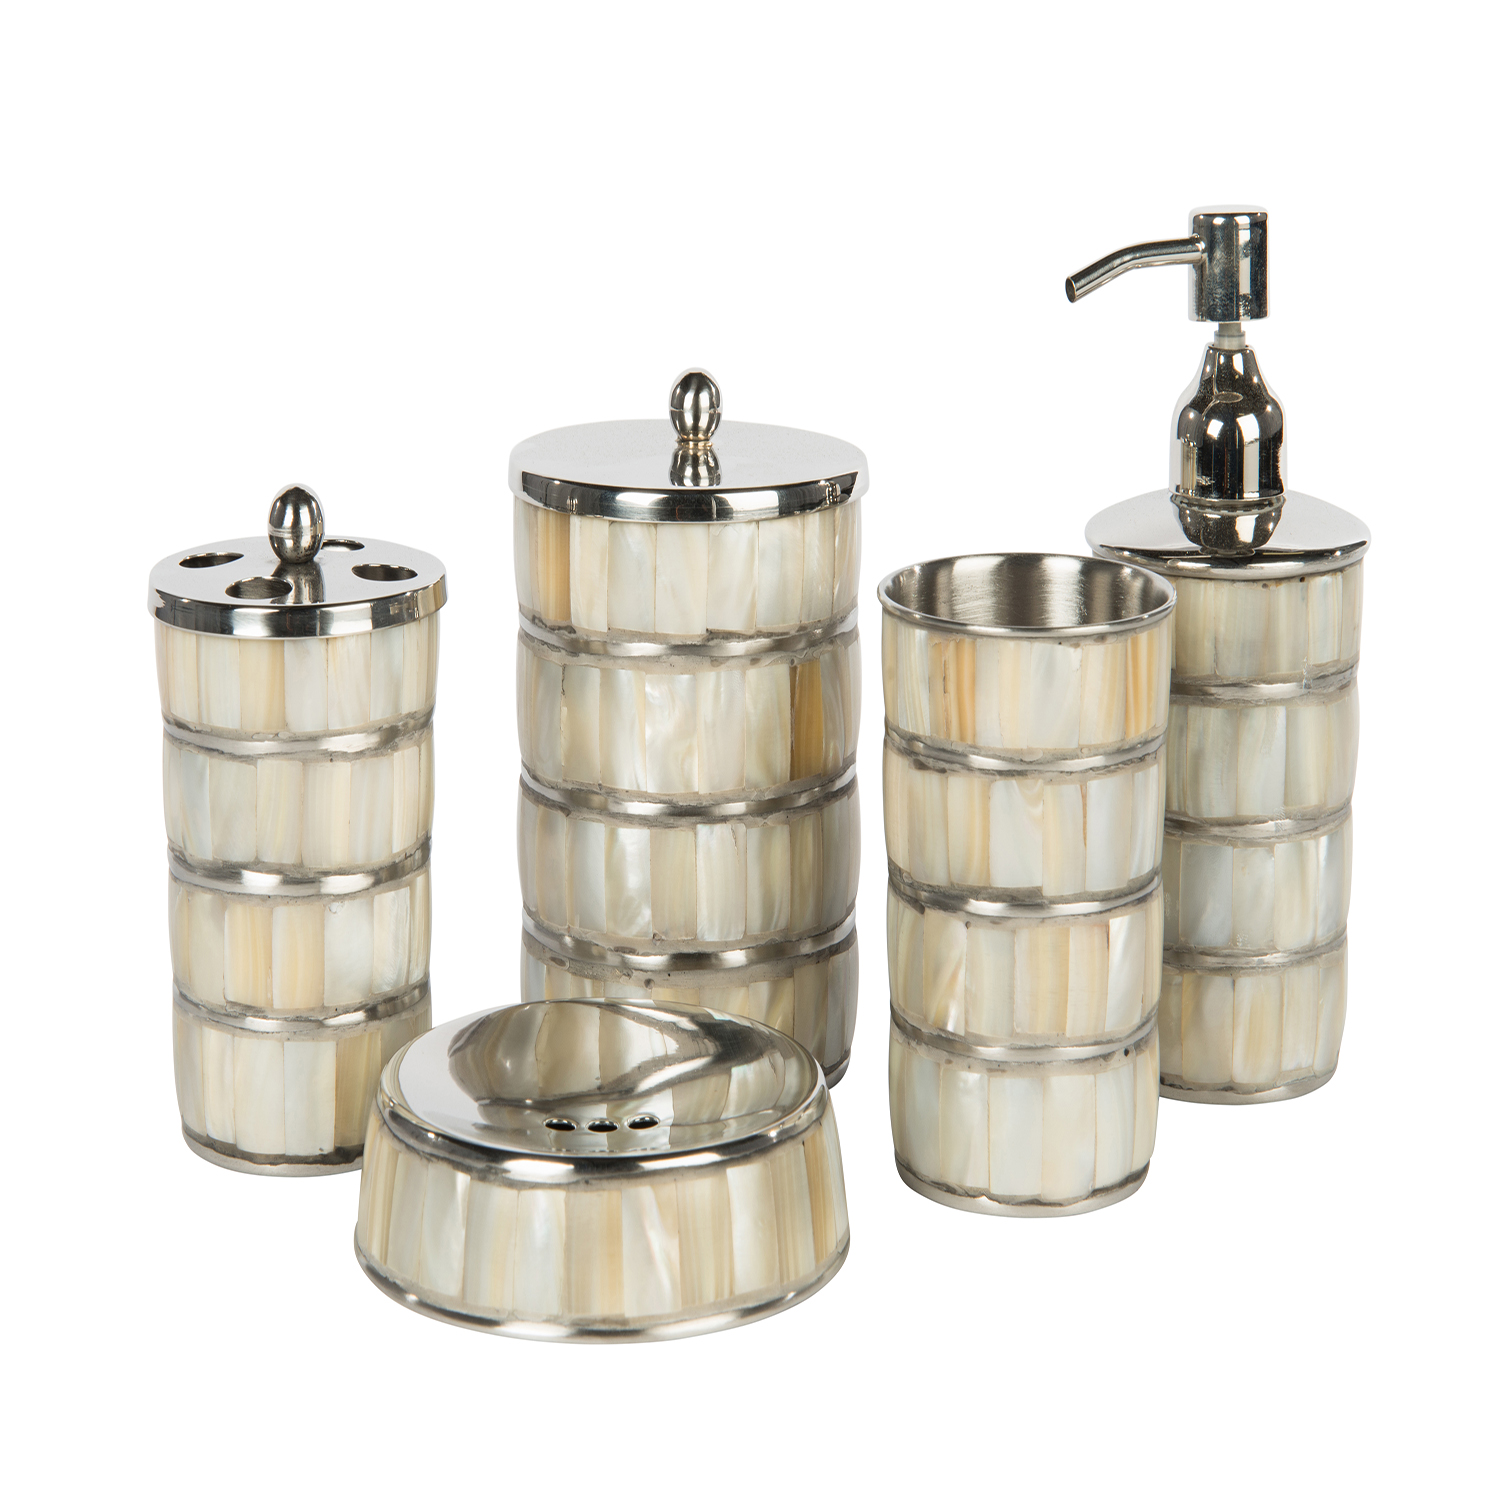 Bath Accessories Category